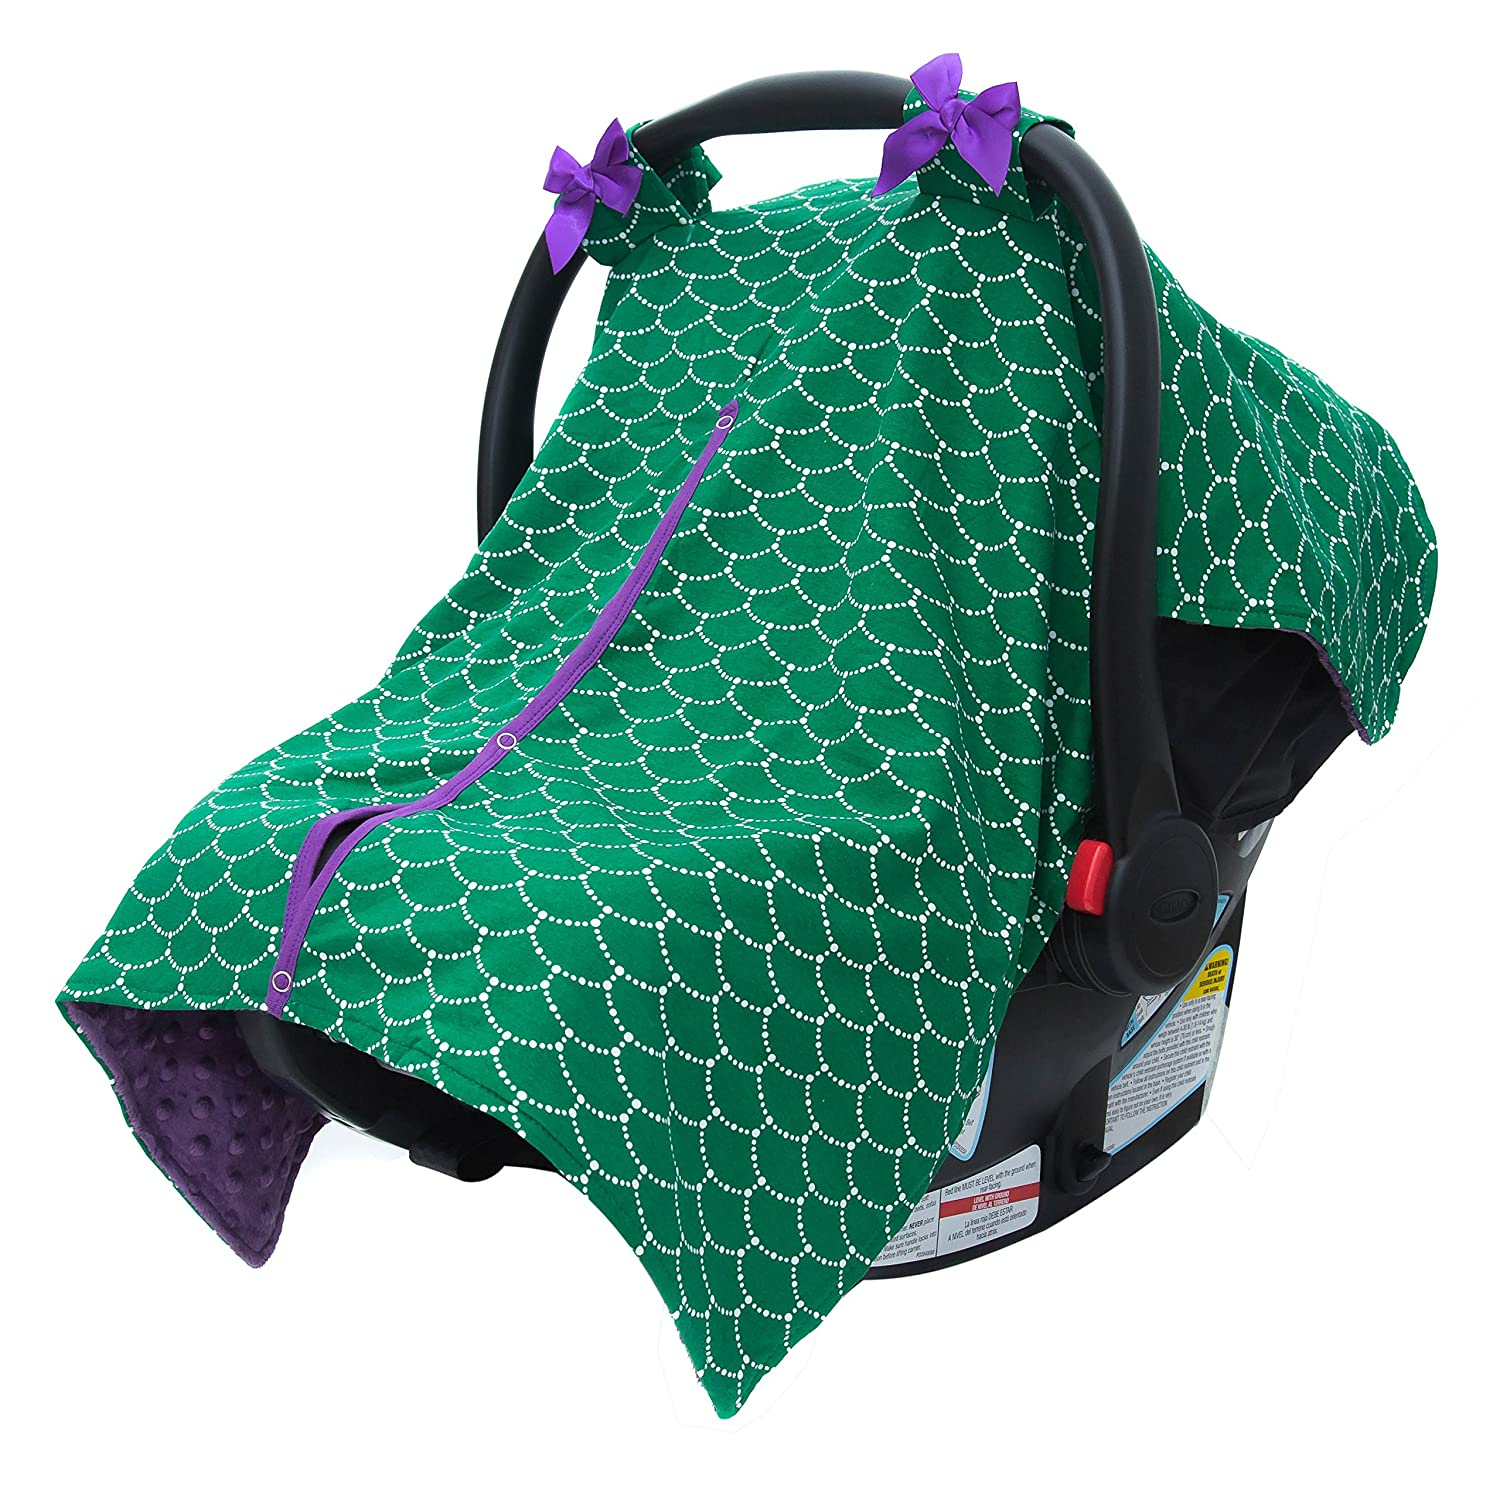 Amazoncom Jlika Baby Car Seat Canopy Cover Infant Canopy Cover